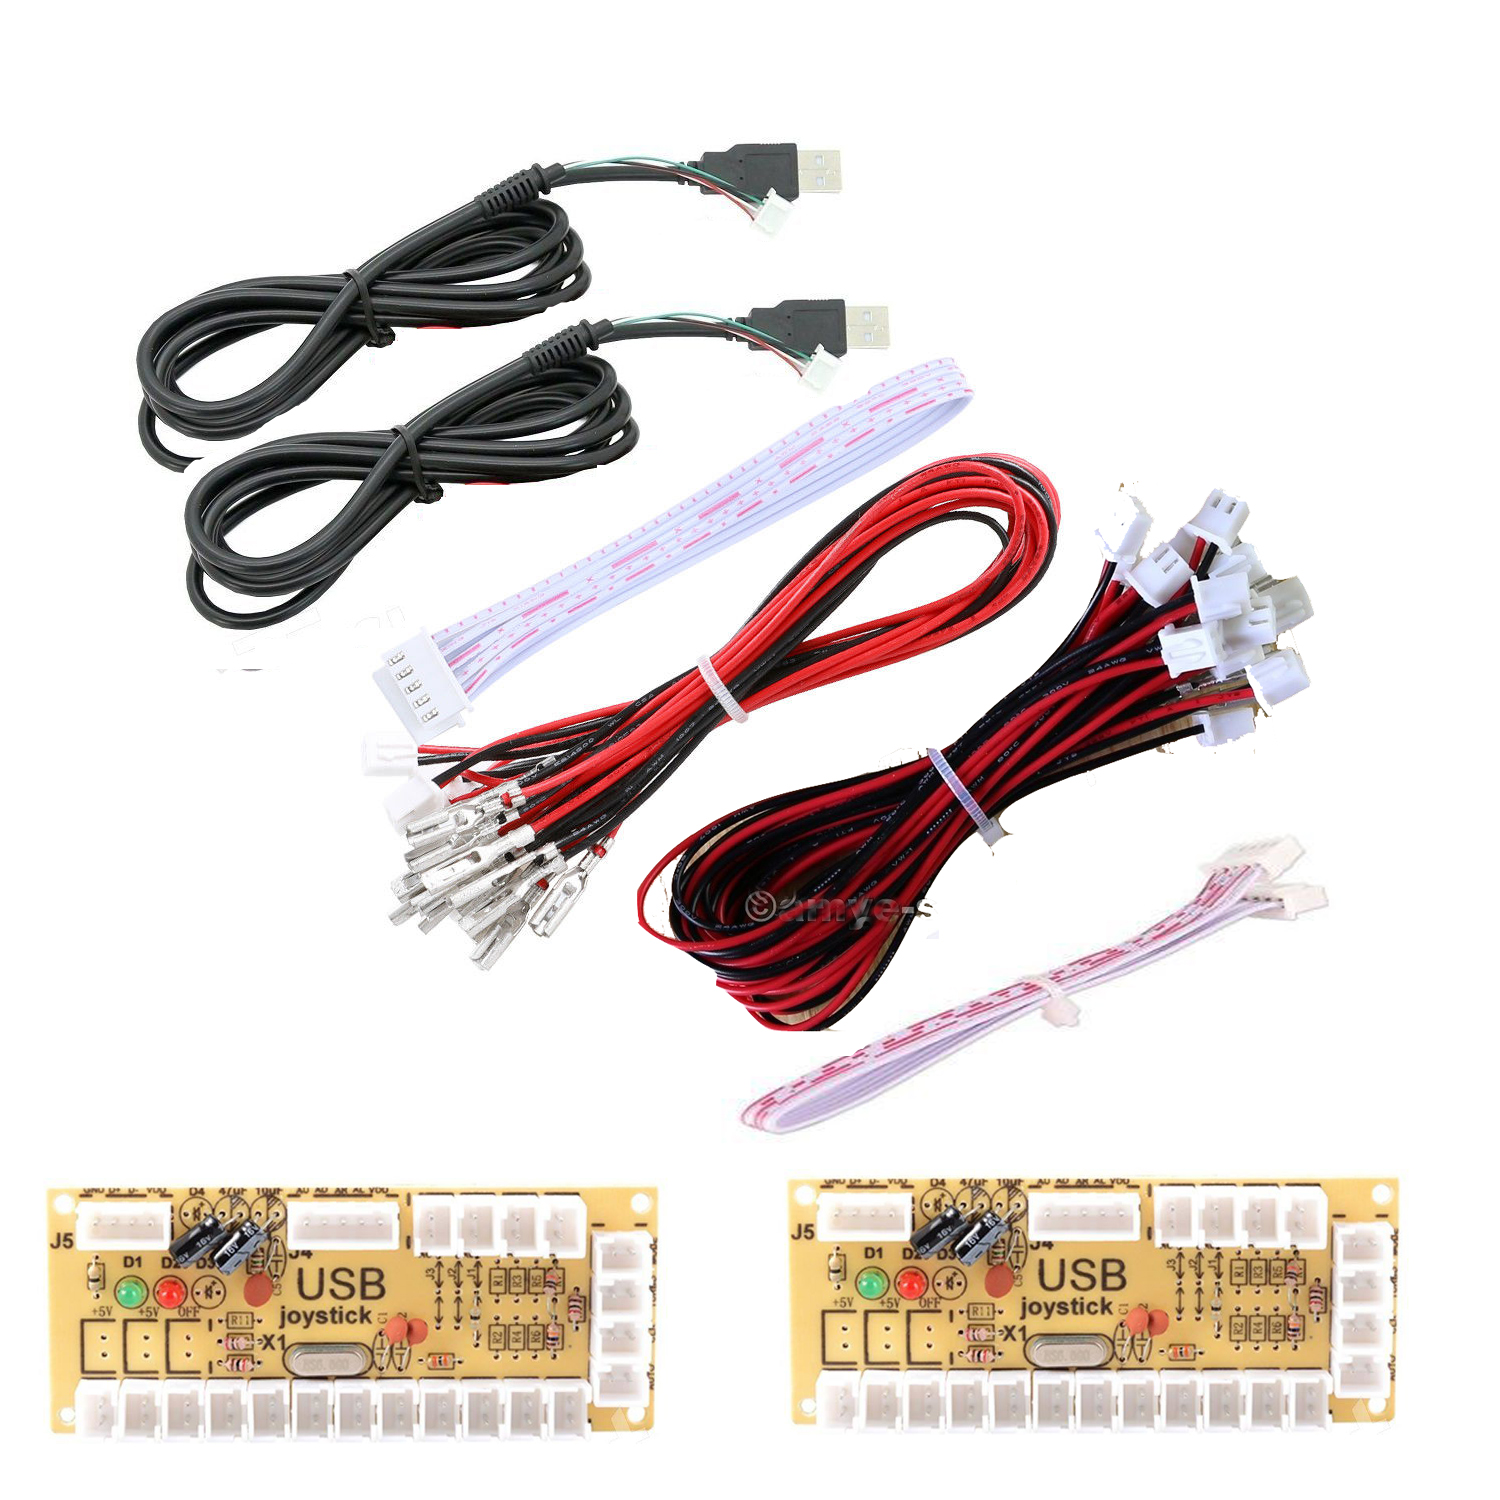 Details about 2 Player Zero Delay USB Encoder PC To Joystick for Raspberry  Pi 3 and USB MAME